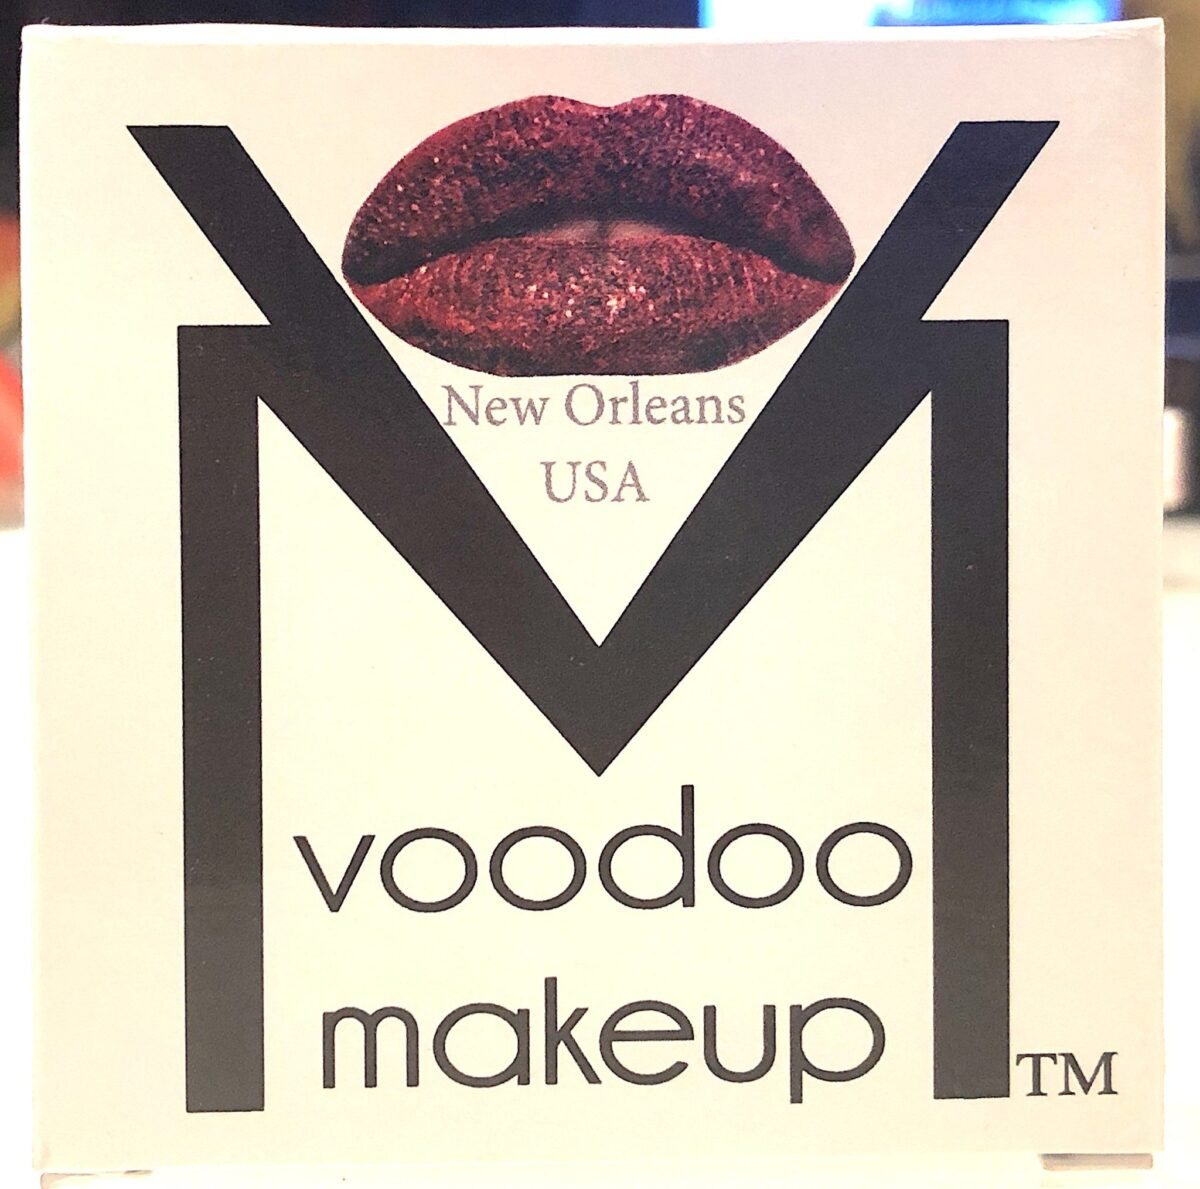 VOODOO MAKEUP COCONUT CREAM FOUNDATION OUTER BOX